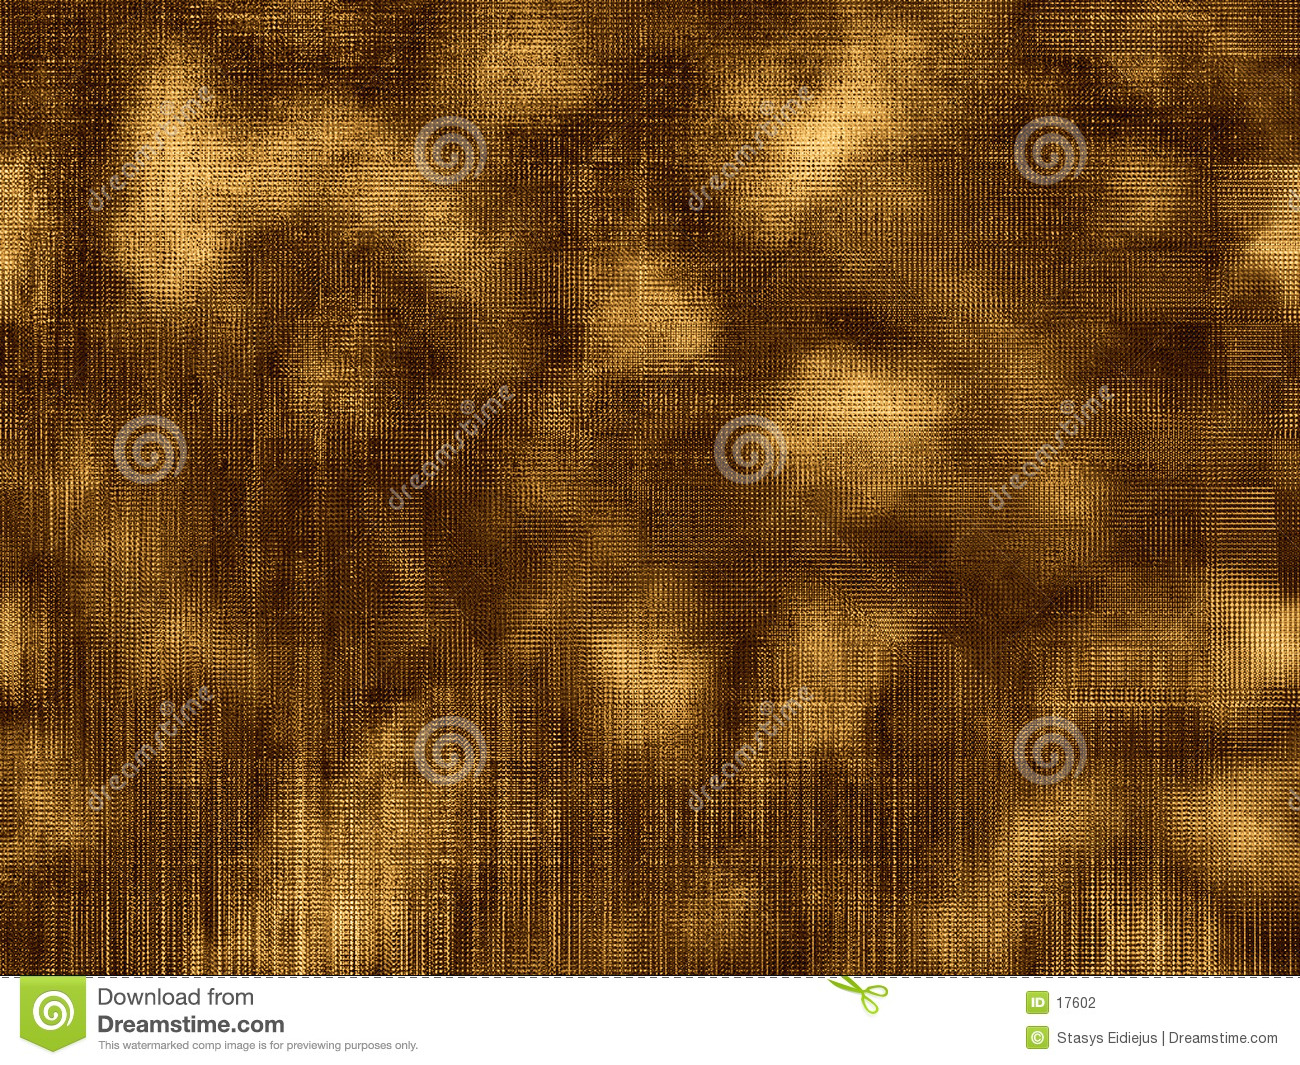 Abstract background- small and detailed texture